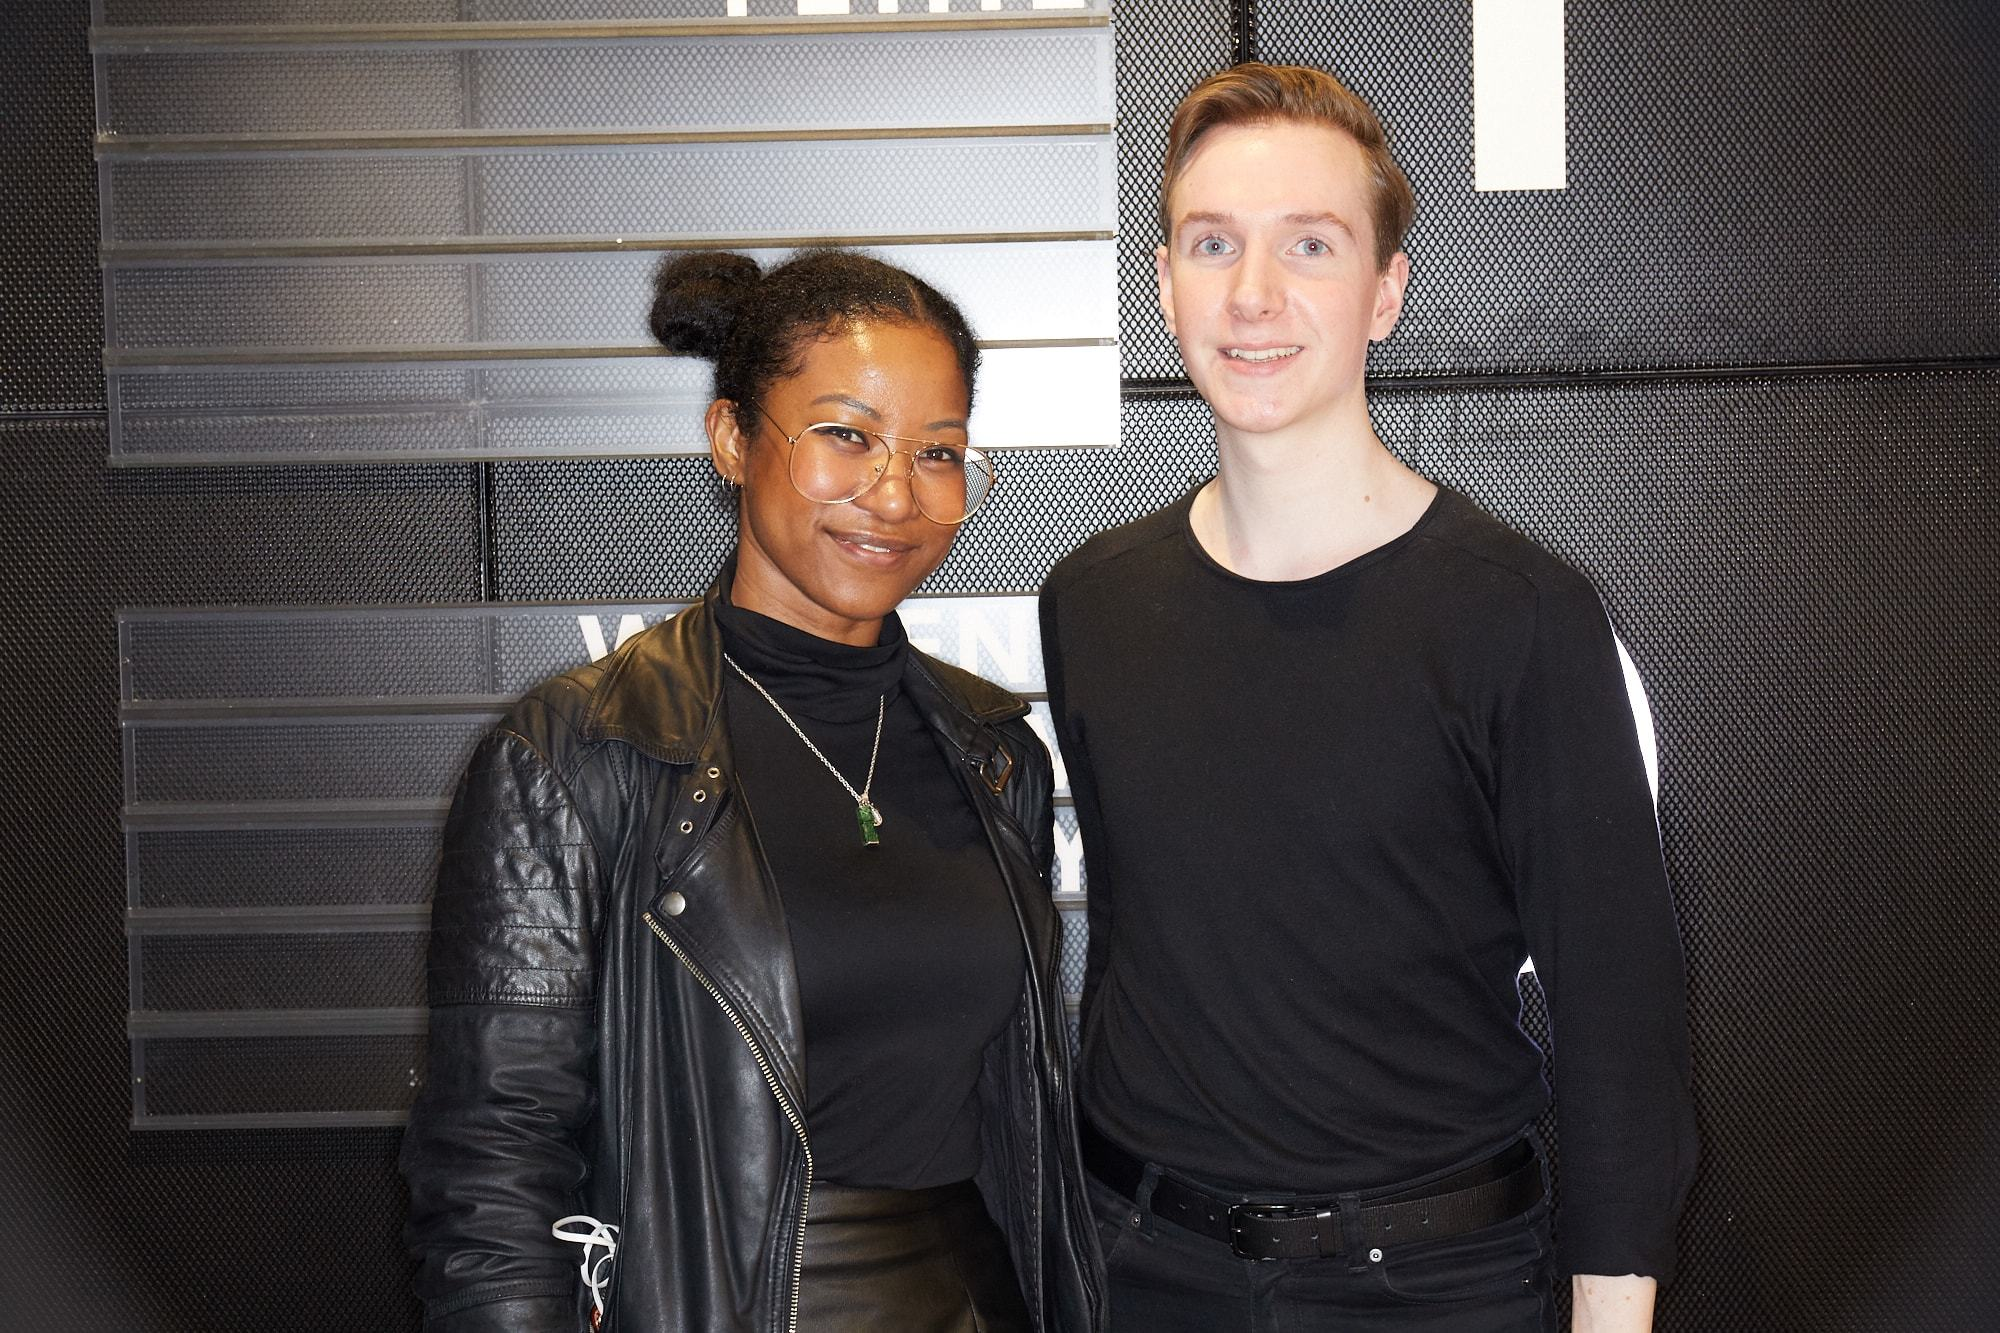 ATH's Jeanette and Steven at the VO5 New Look store opening